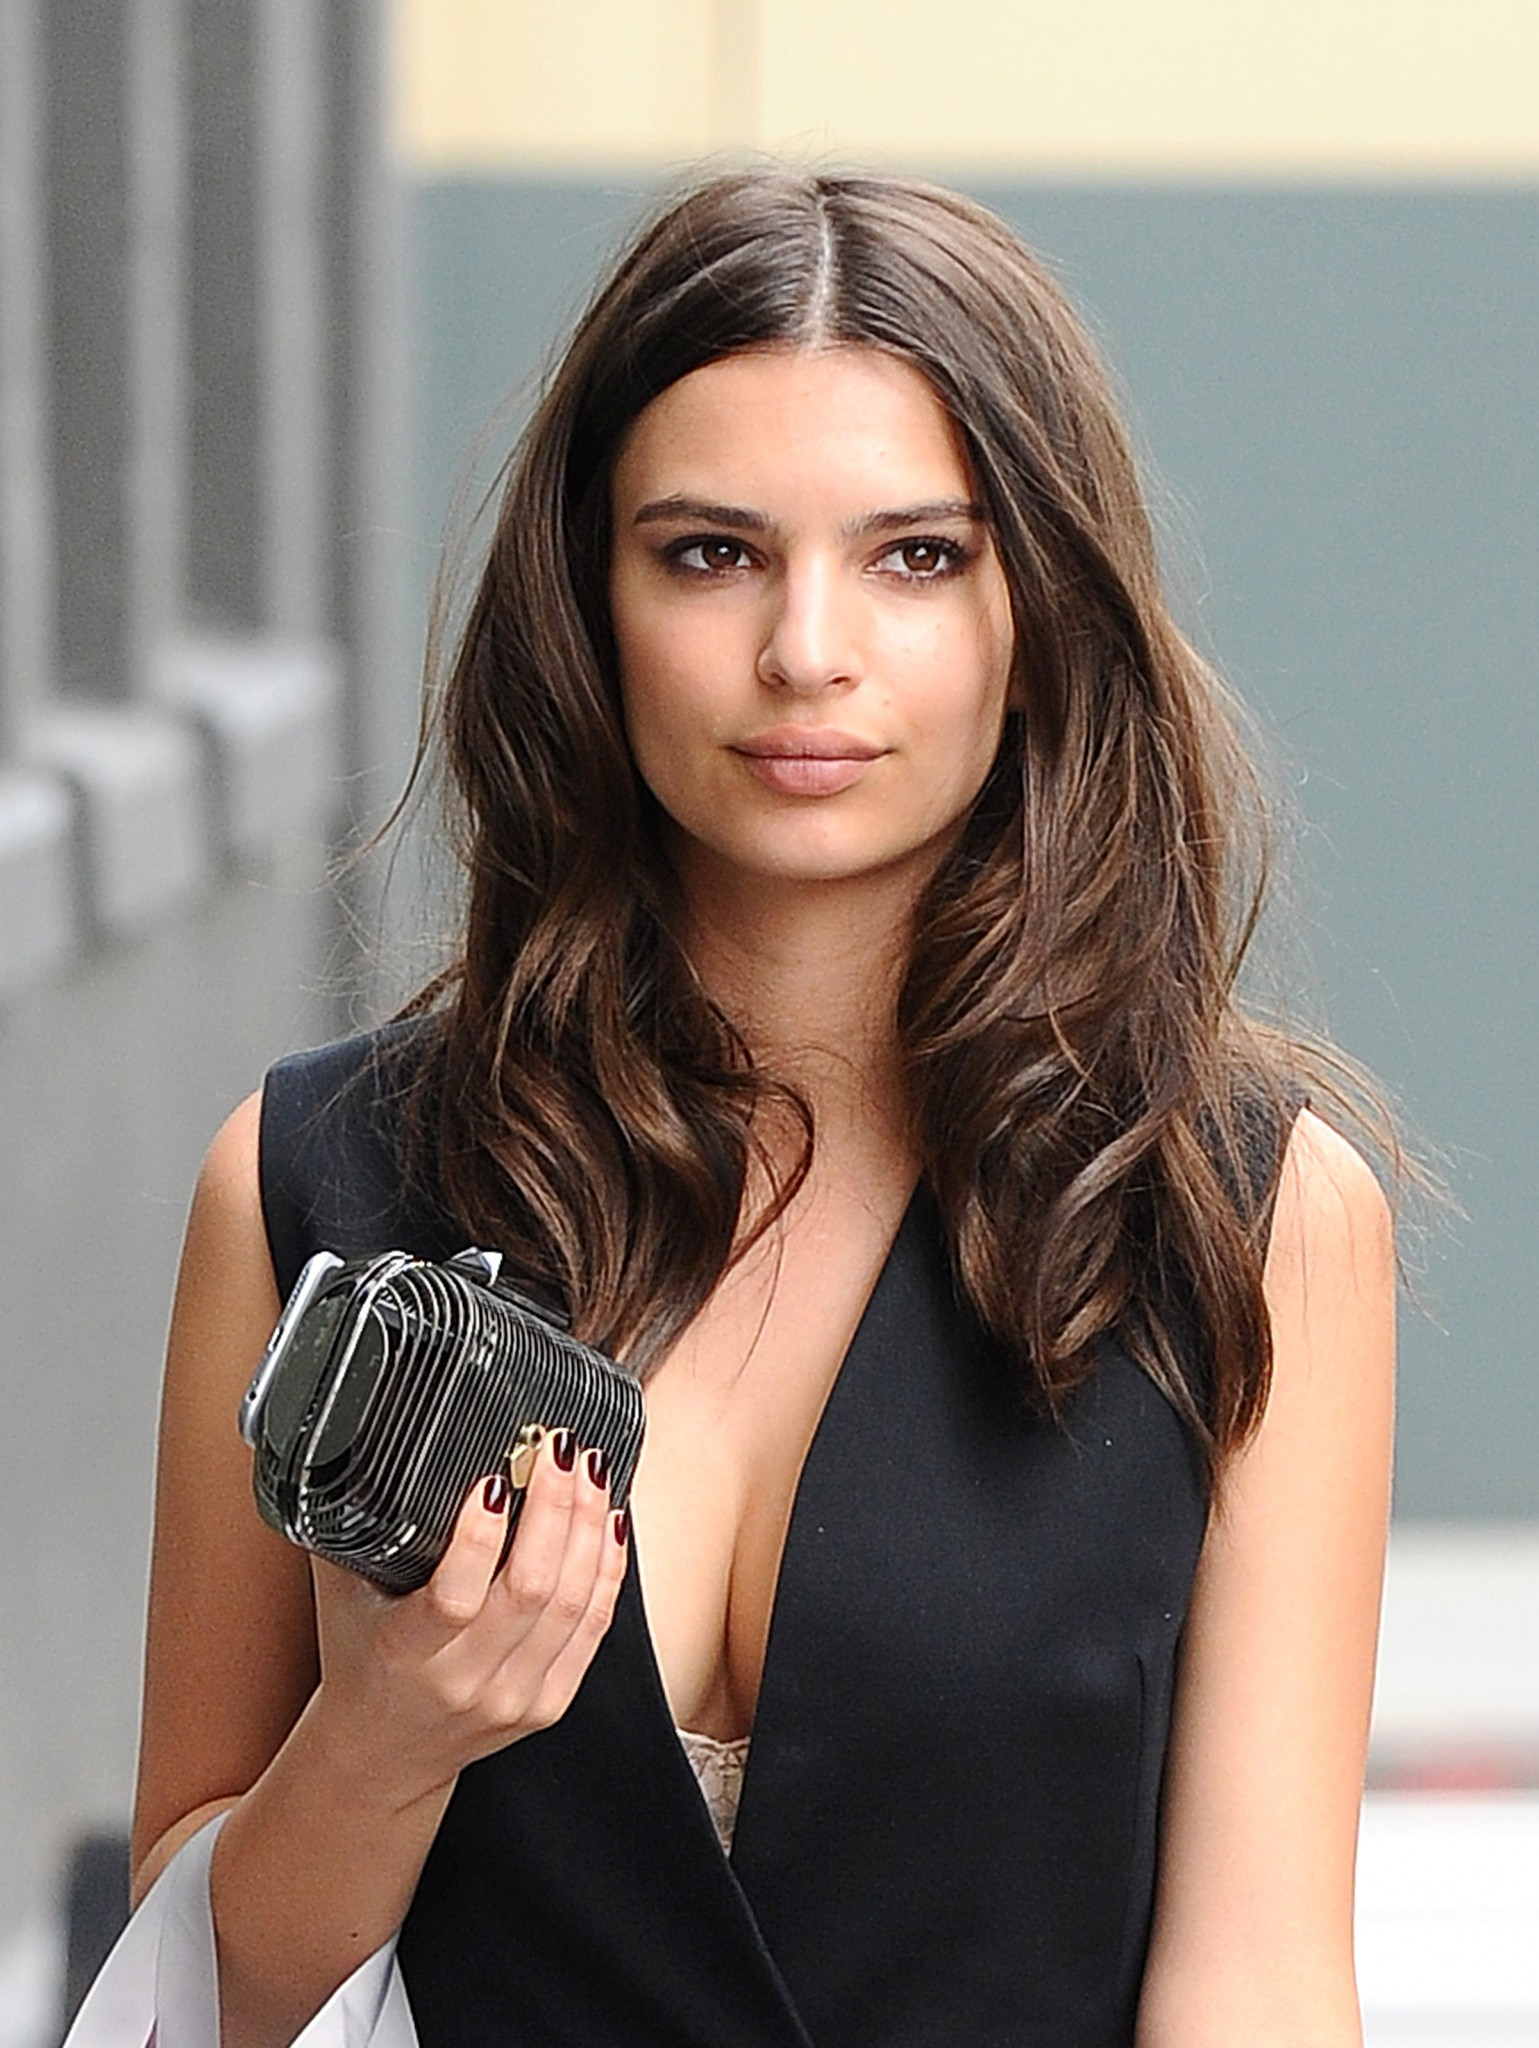 emily-ratajkowski-cleavage-while-out-shopping-6